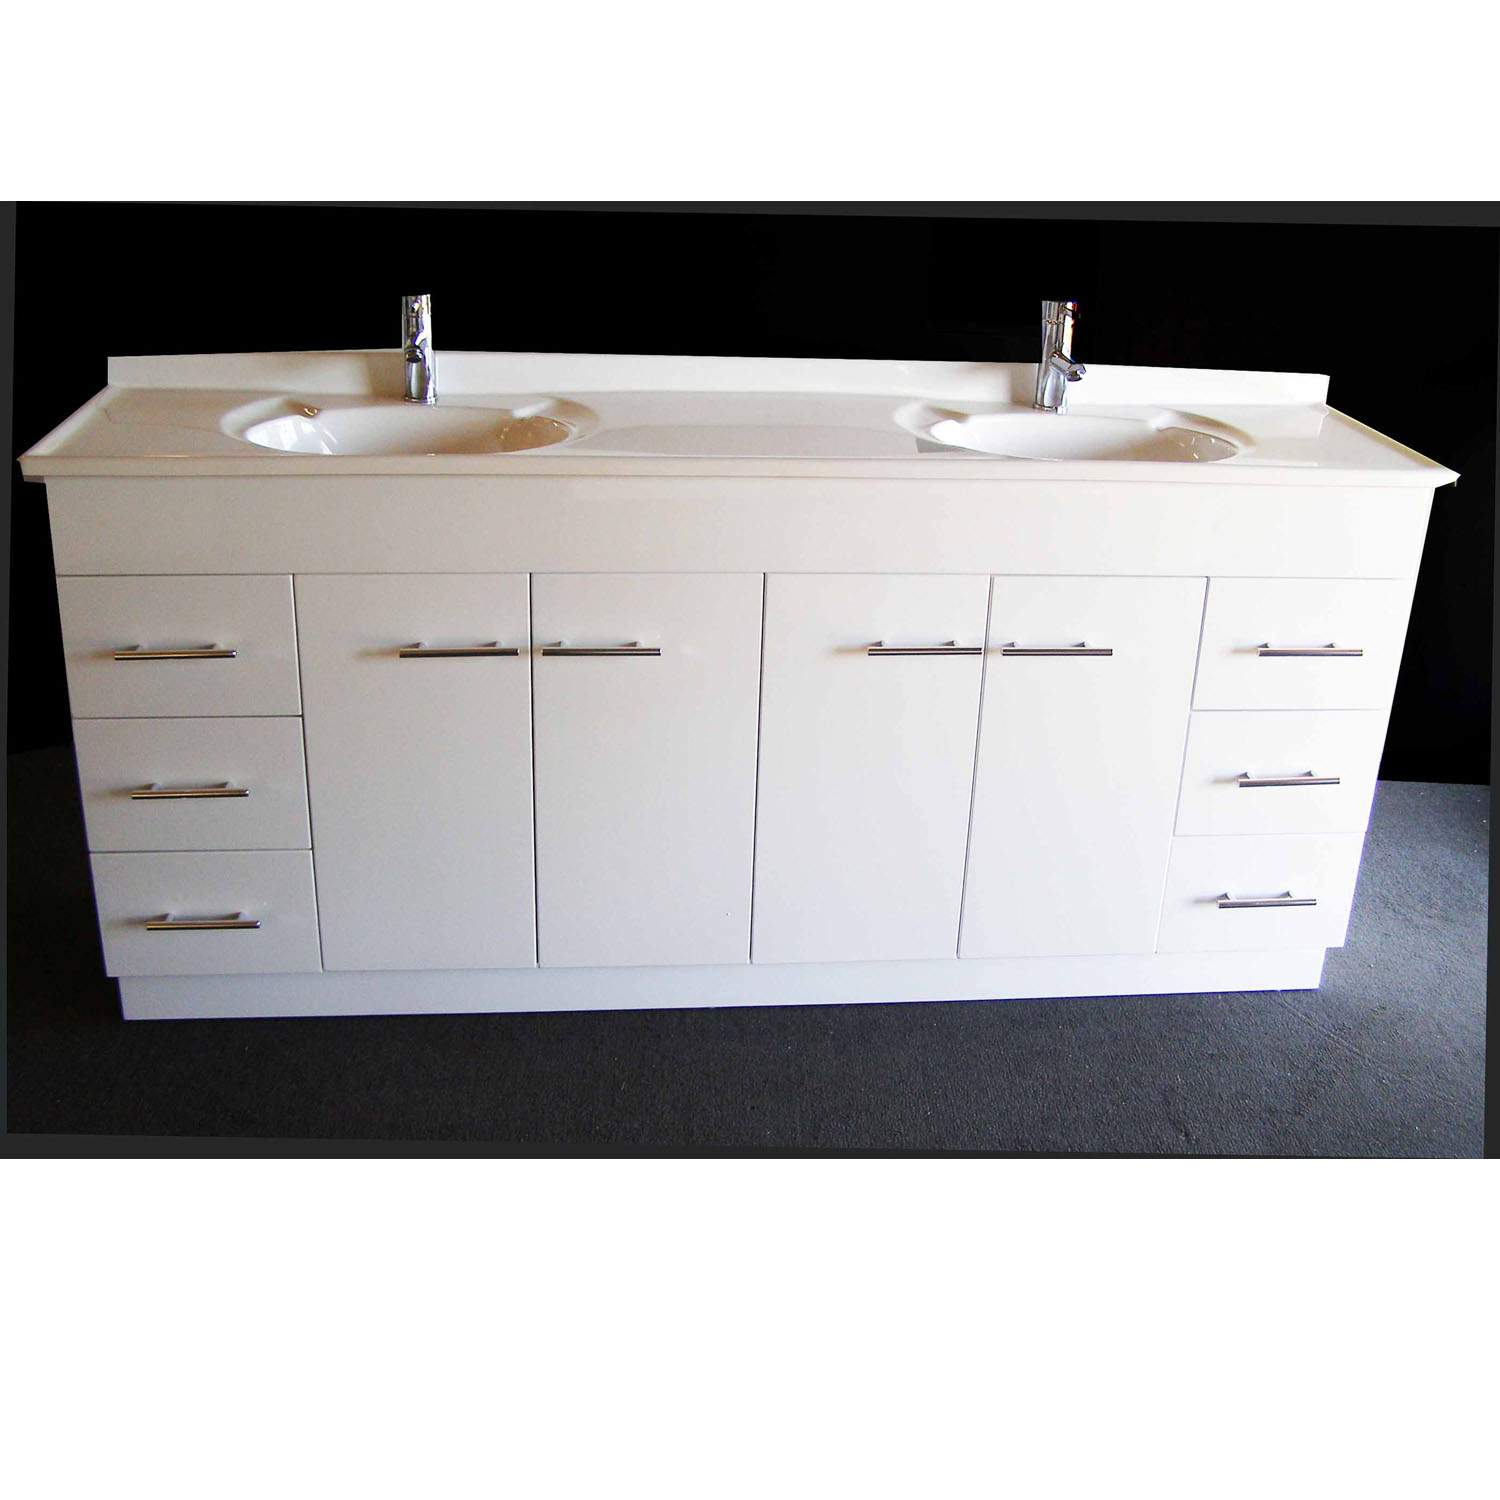 Amazing Australian Made Bathroom Vanity Unit Custom Made Bathroom Vanity Unit